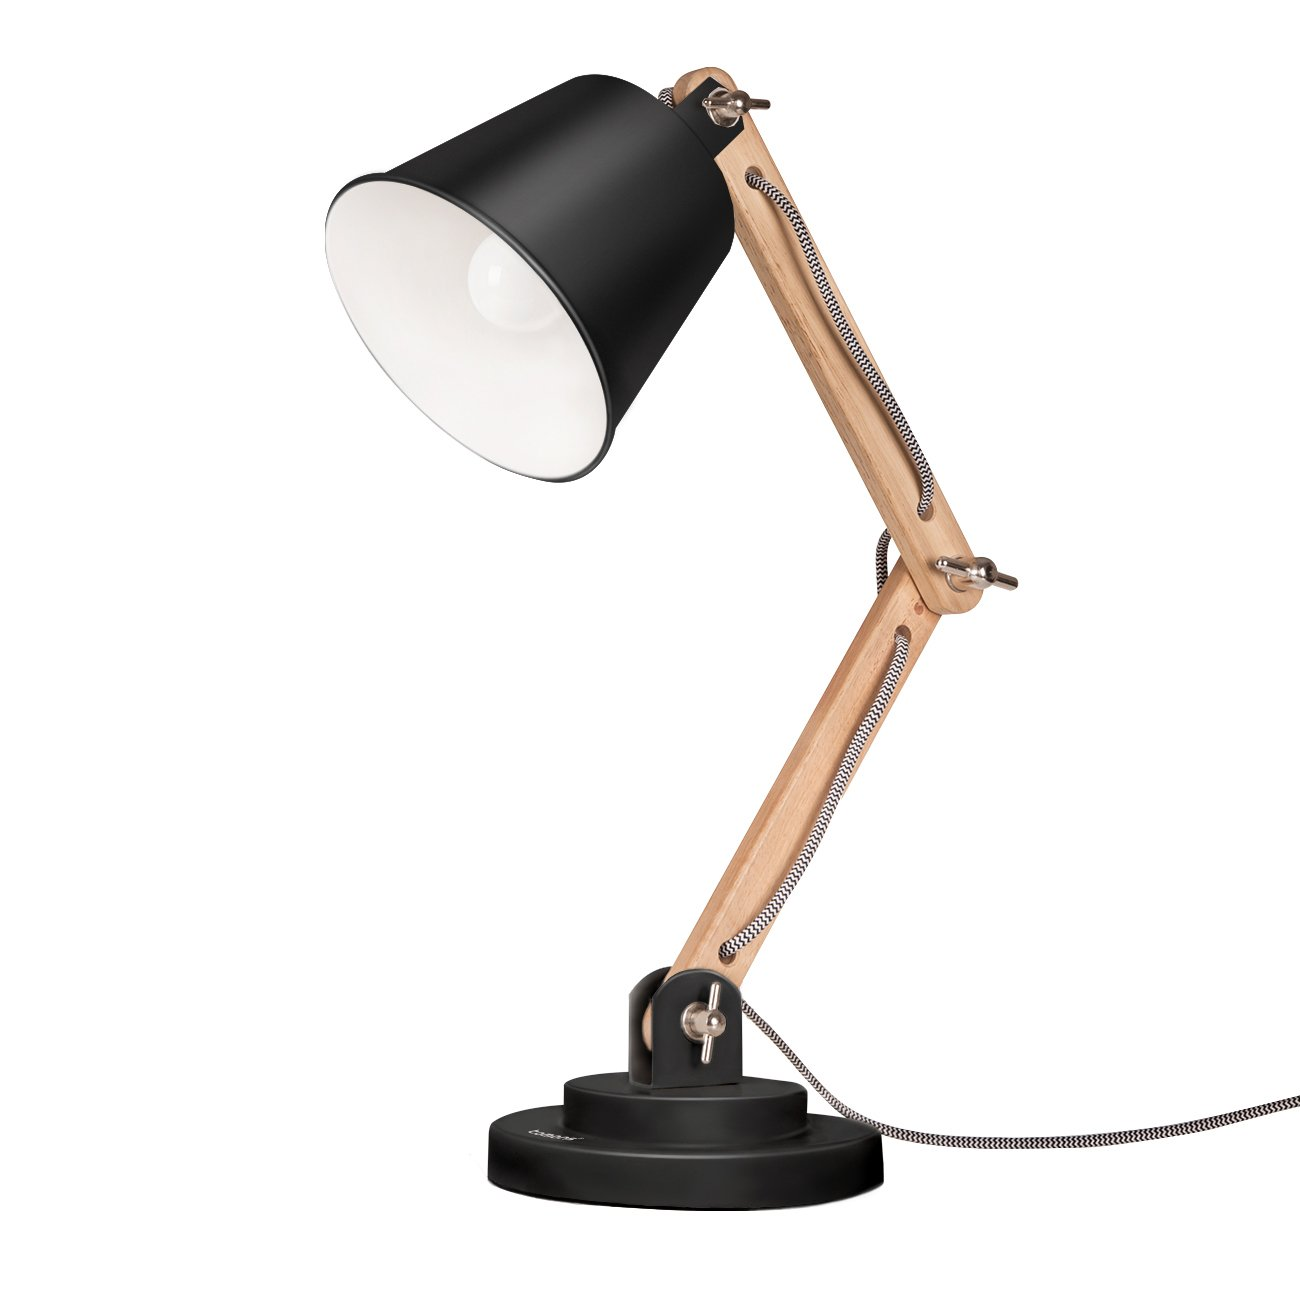 Tomons Swing Arm Desk Lamp, Natural Wood Table Lamp, Reading Lights, Work Lamp, Study Lamp with Retro Design for Living Room, Bedside - Black